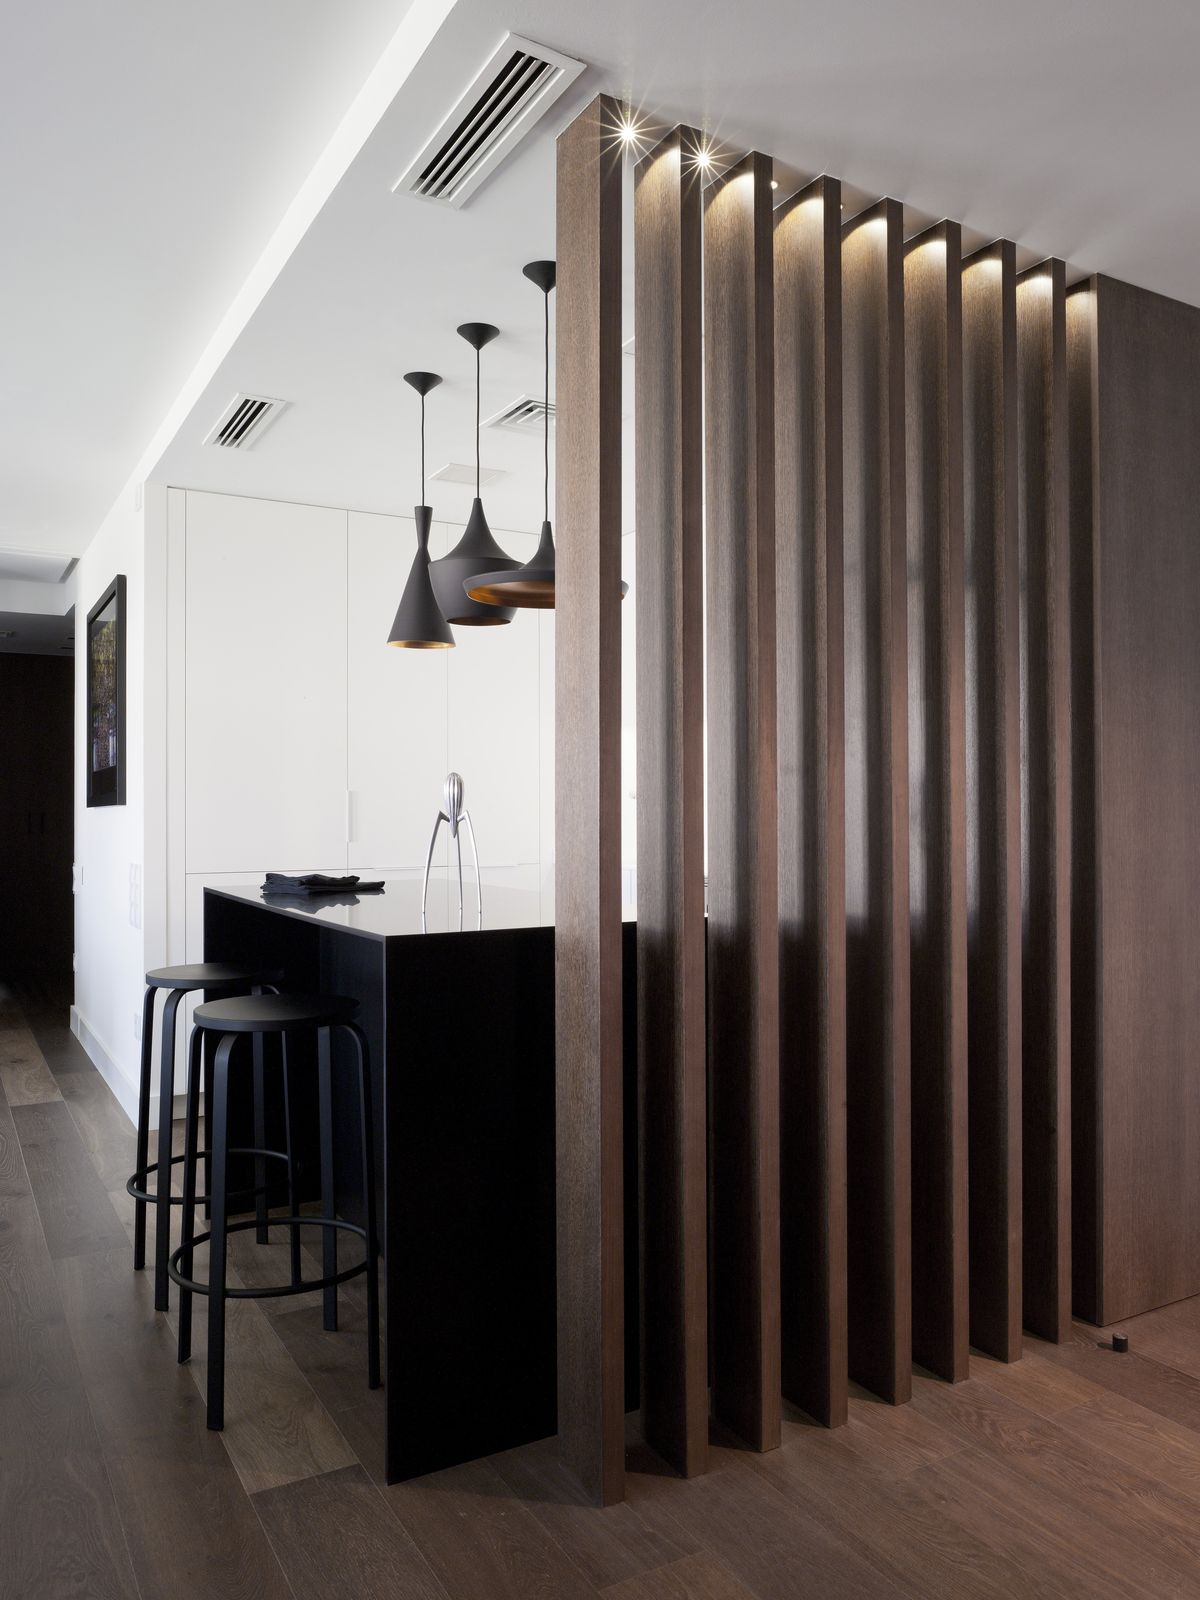 Pin by pankaj makkar on pooja room pinterest divider interiors